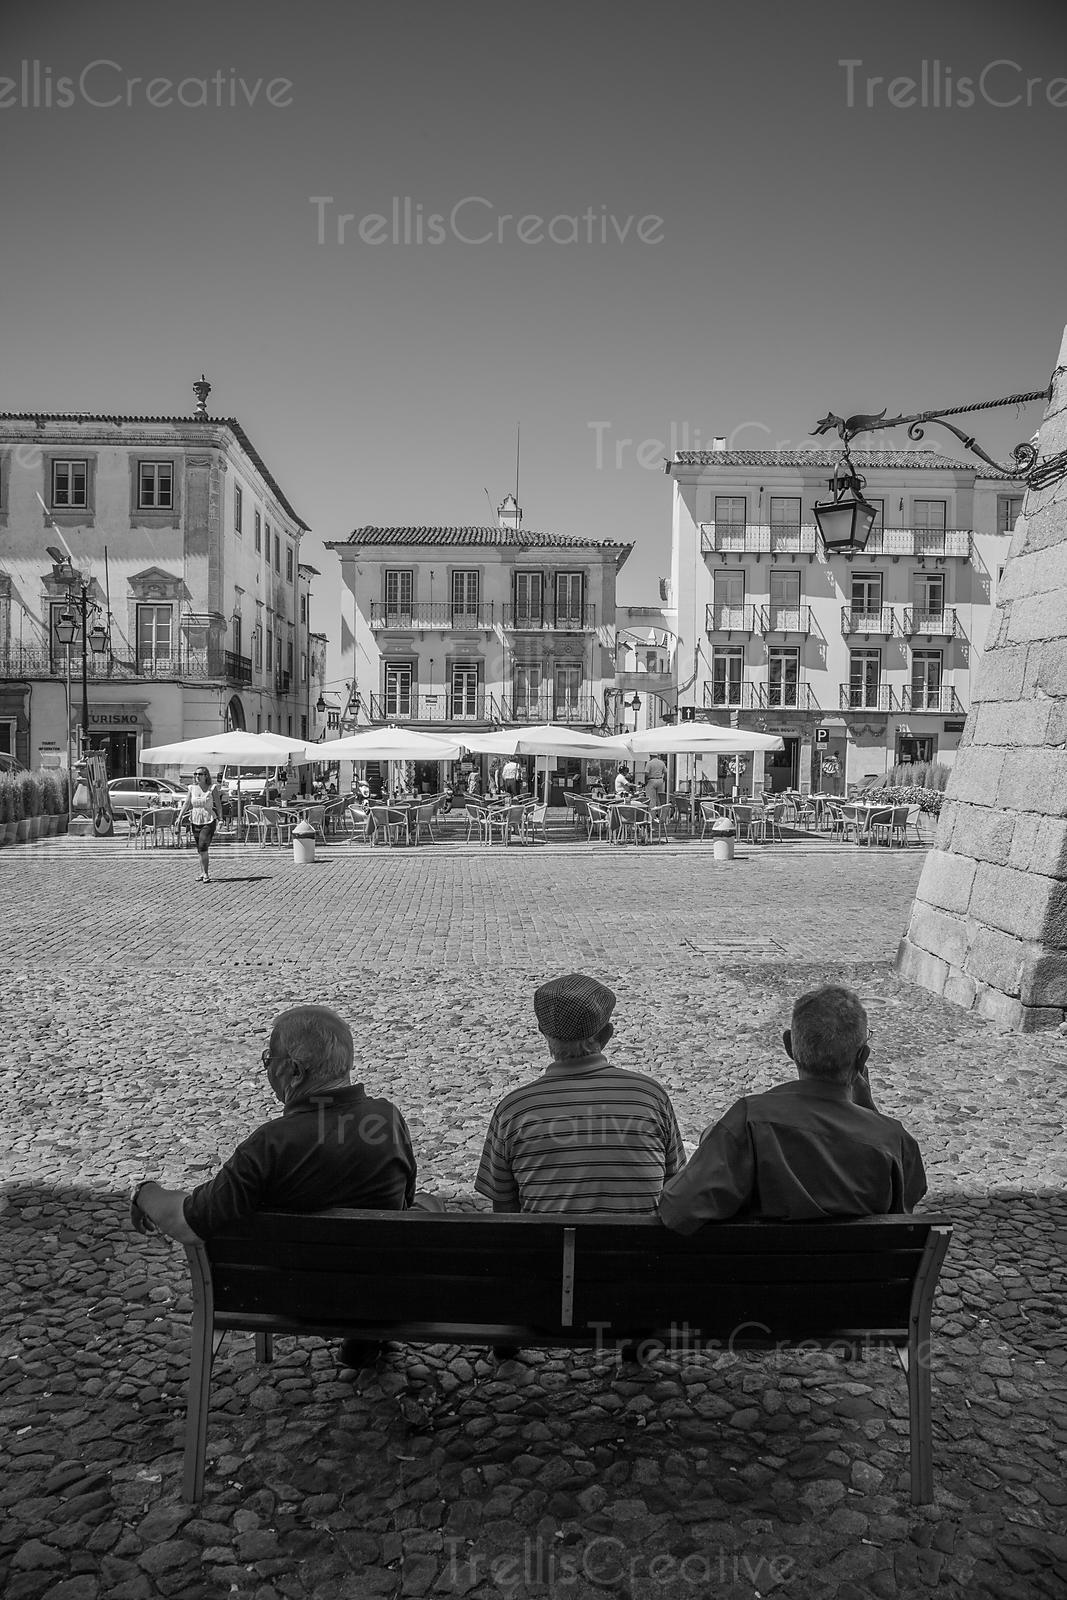 Benches are a vital social tool in many parts of the world. This bench has seen some heavy conversations. Evora, Portugal